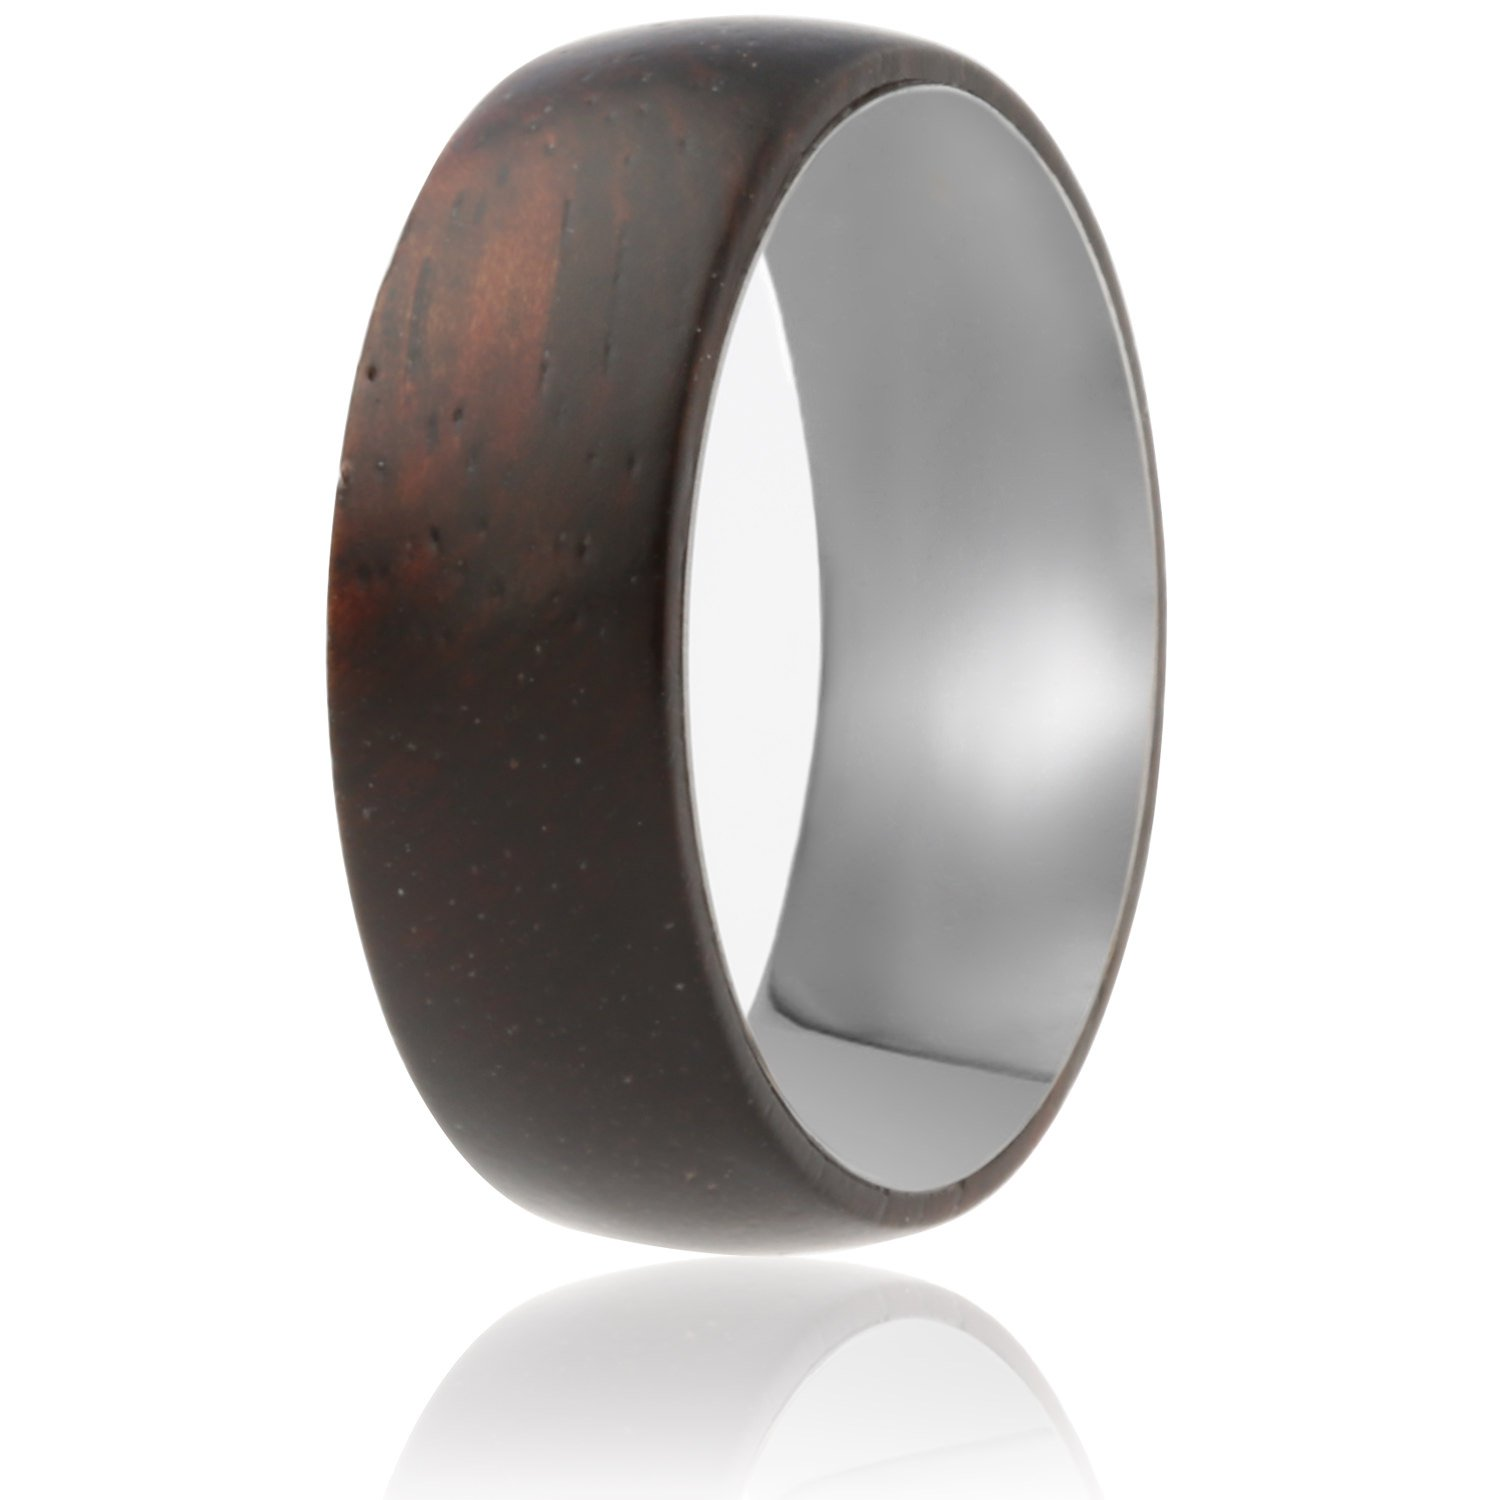 SOLEED Rings Wooden Wedding Band with Inner Tungsten Layer For Strength and Protection - Designed For Men and Women, 8mm Natural Ebony Wood Ring, Comfort Fit Design, Domed Top - Size 13